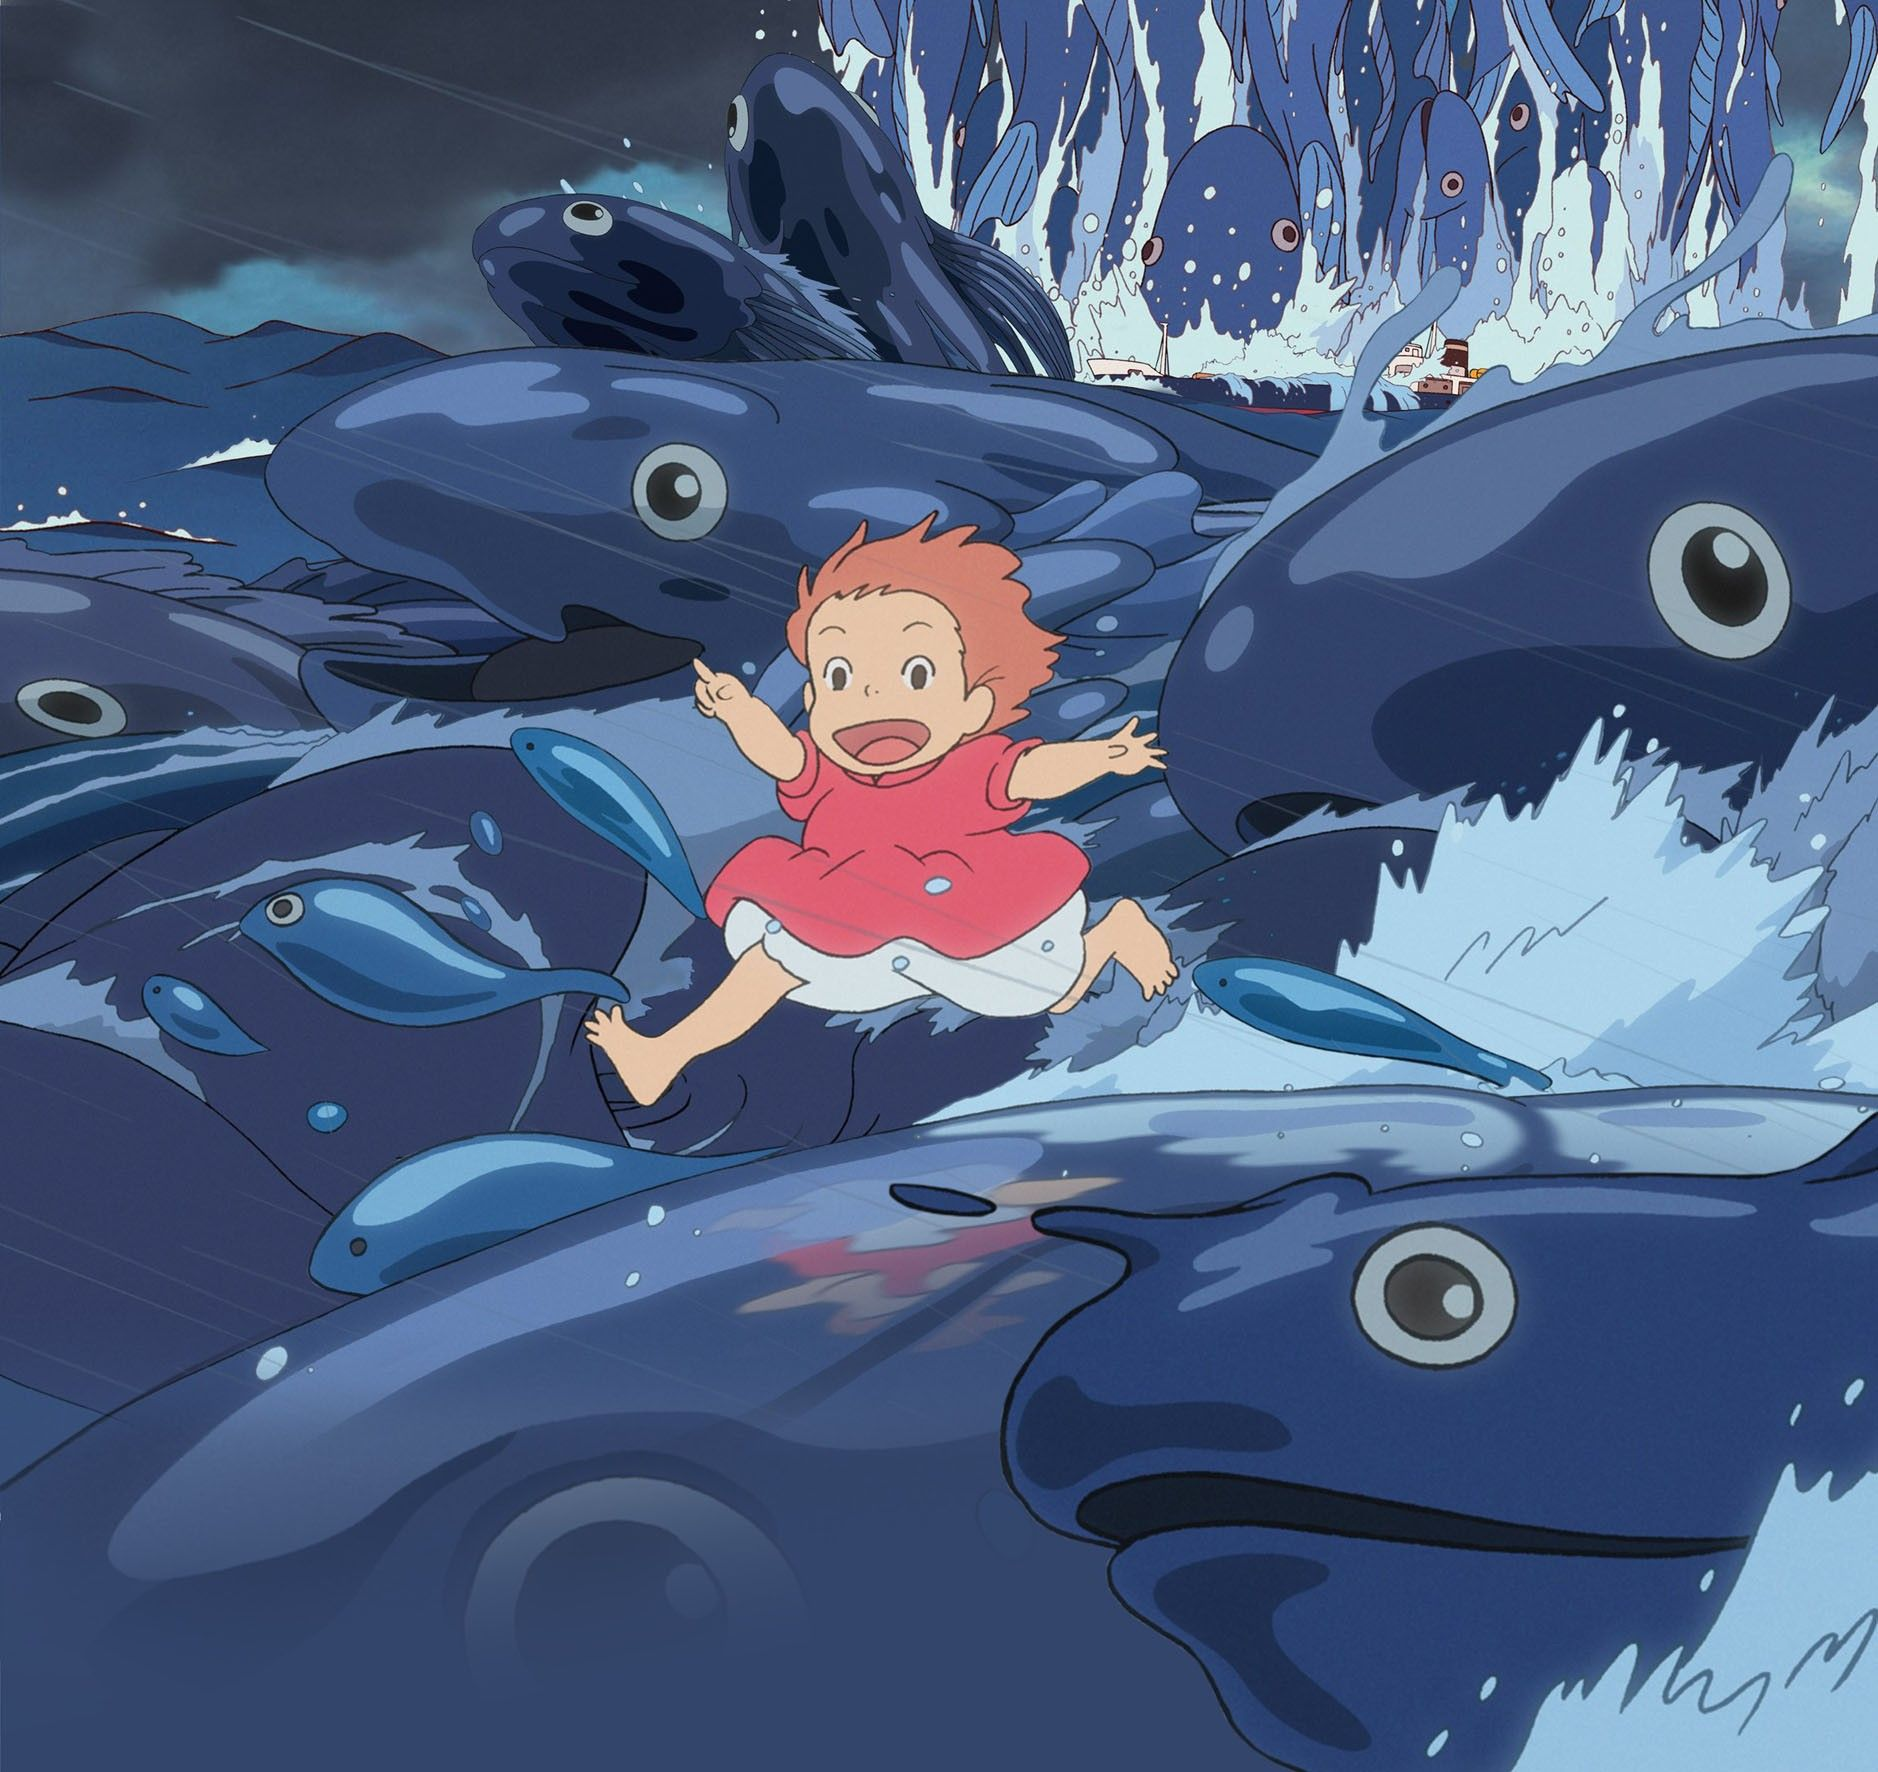 Ponyo in the waves would make a great lower border around the wrist! Sousuke on his little boat would be a great addition, on the inside of the wrist for instance.